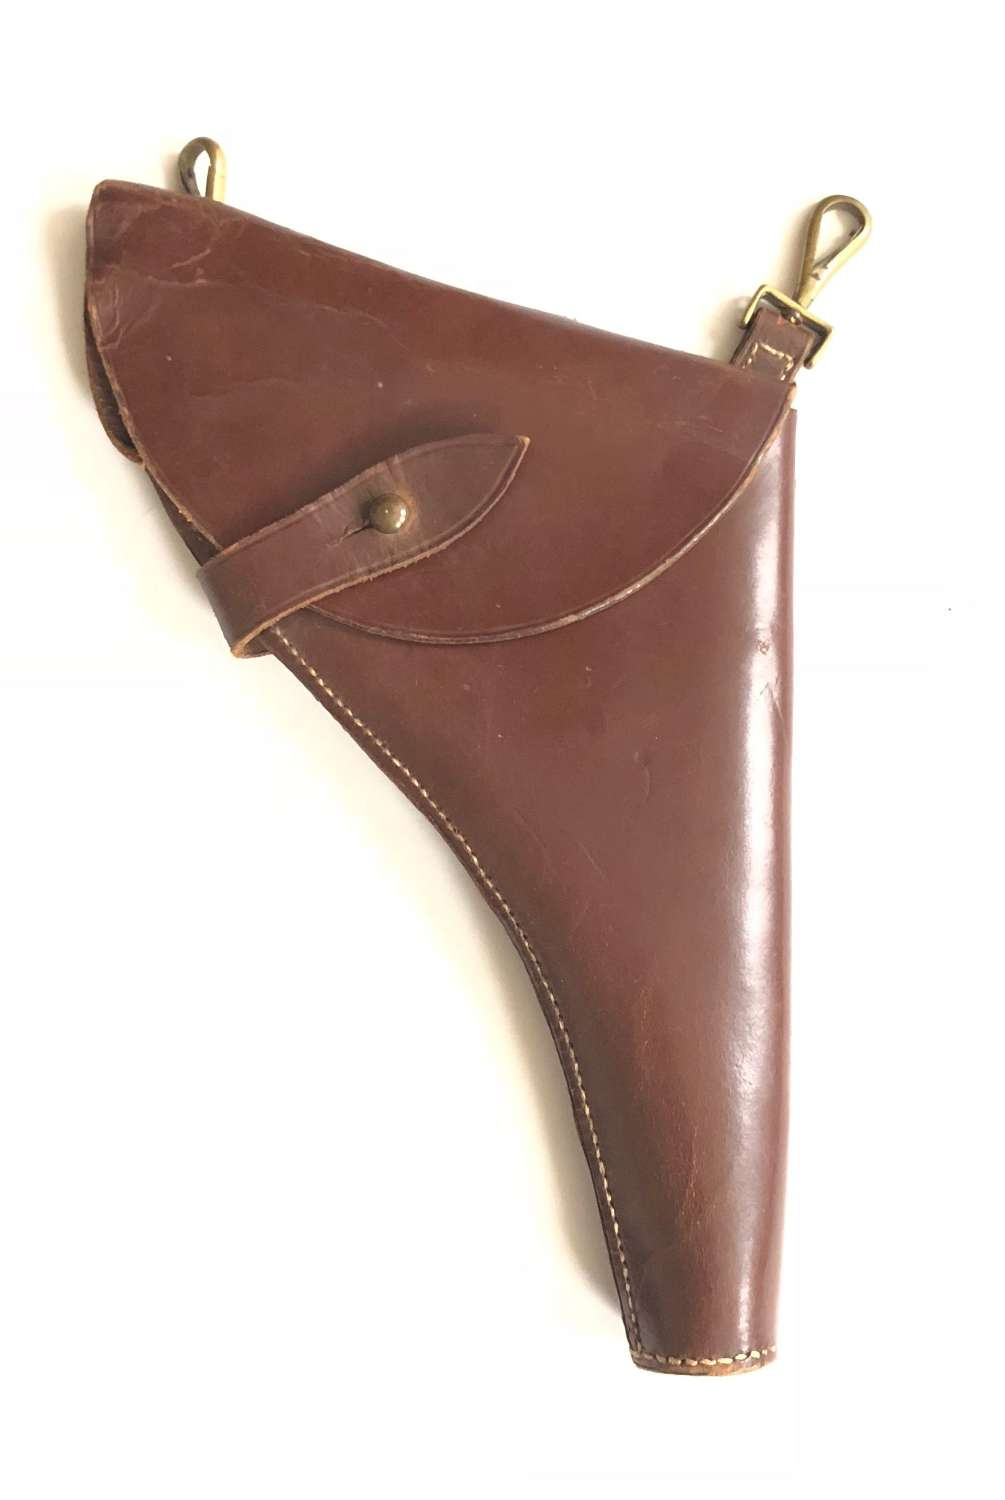 British Army Officer's Sam Brown Equipment Holster.